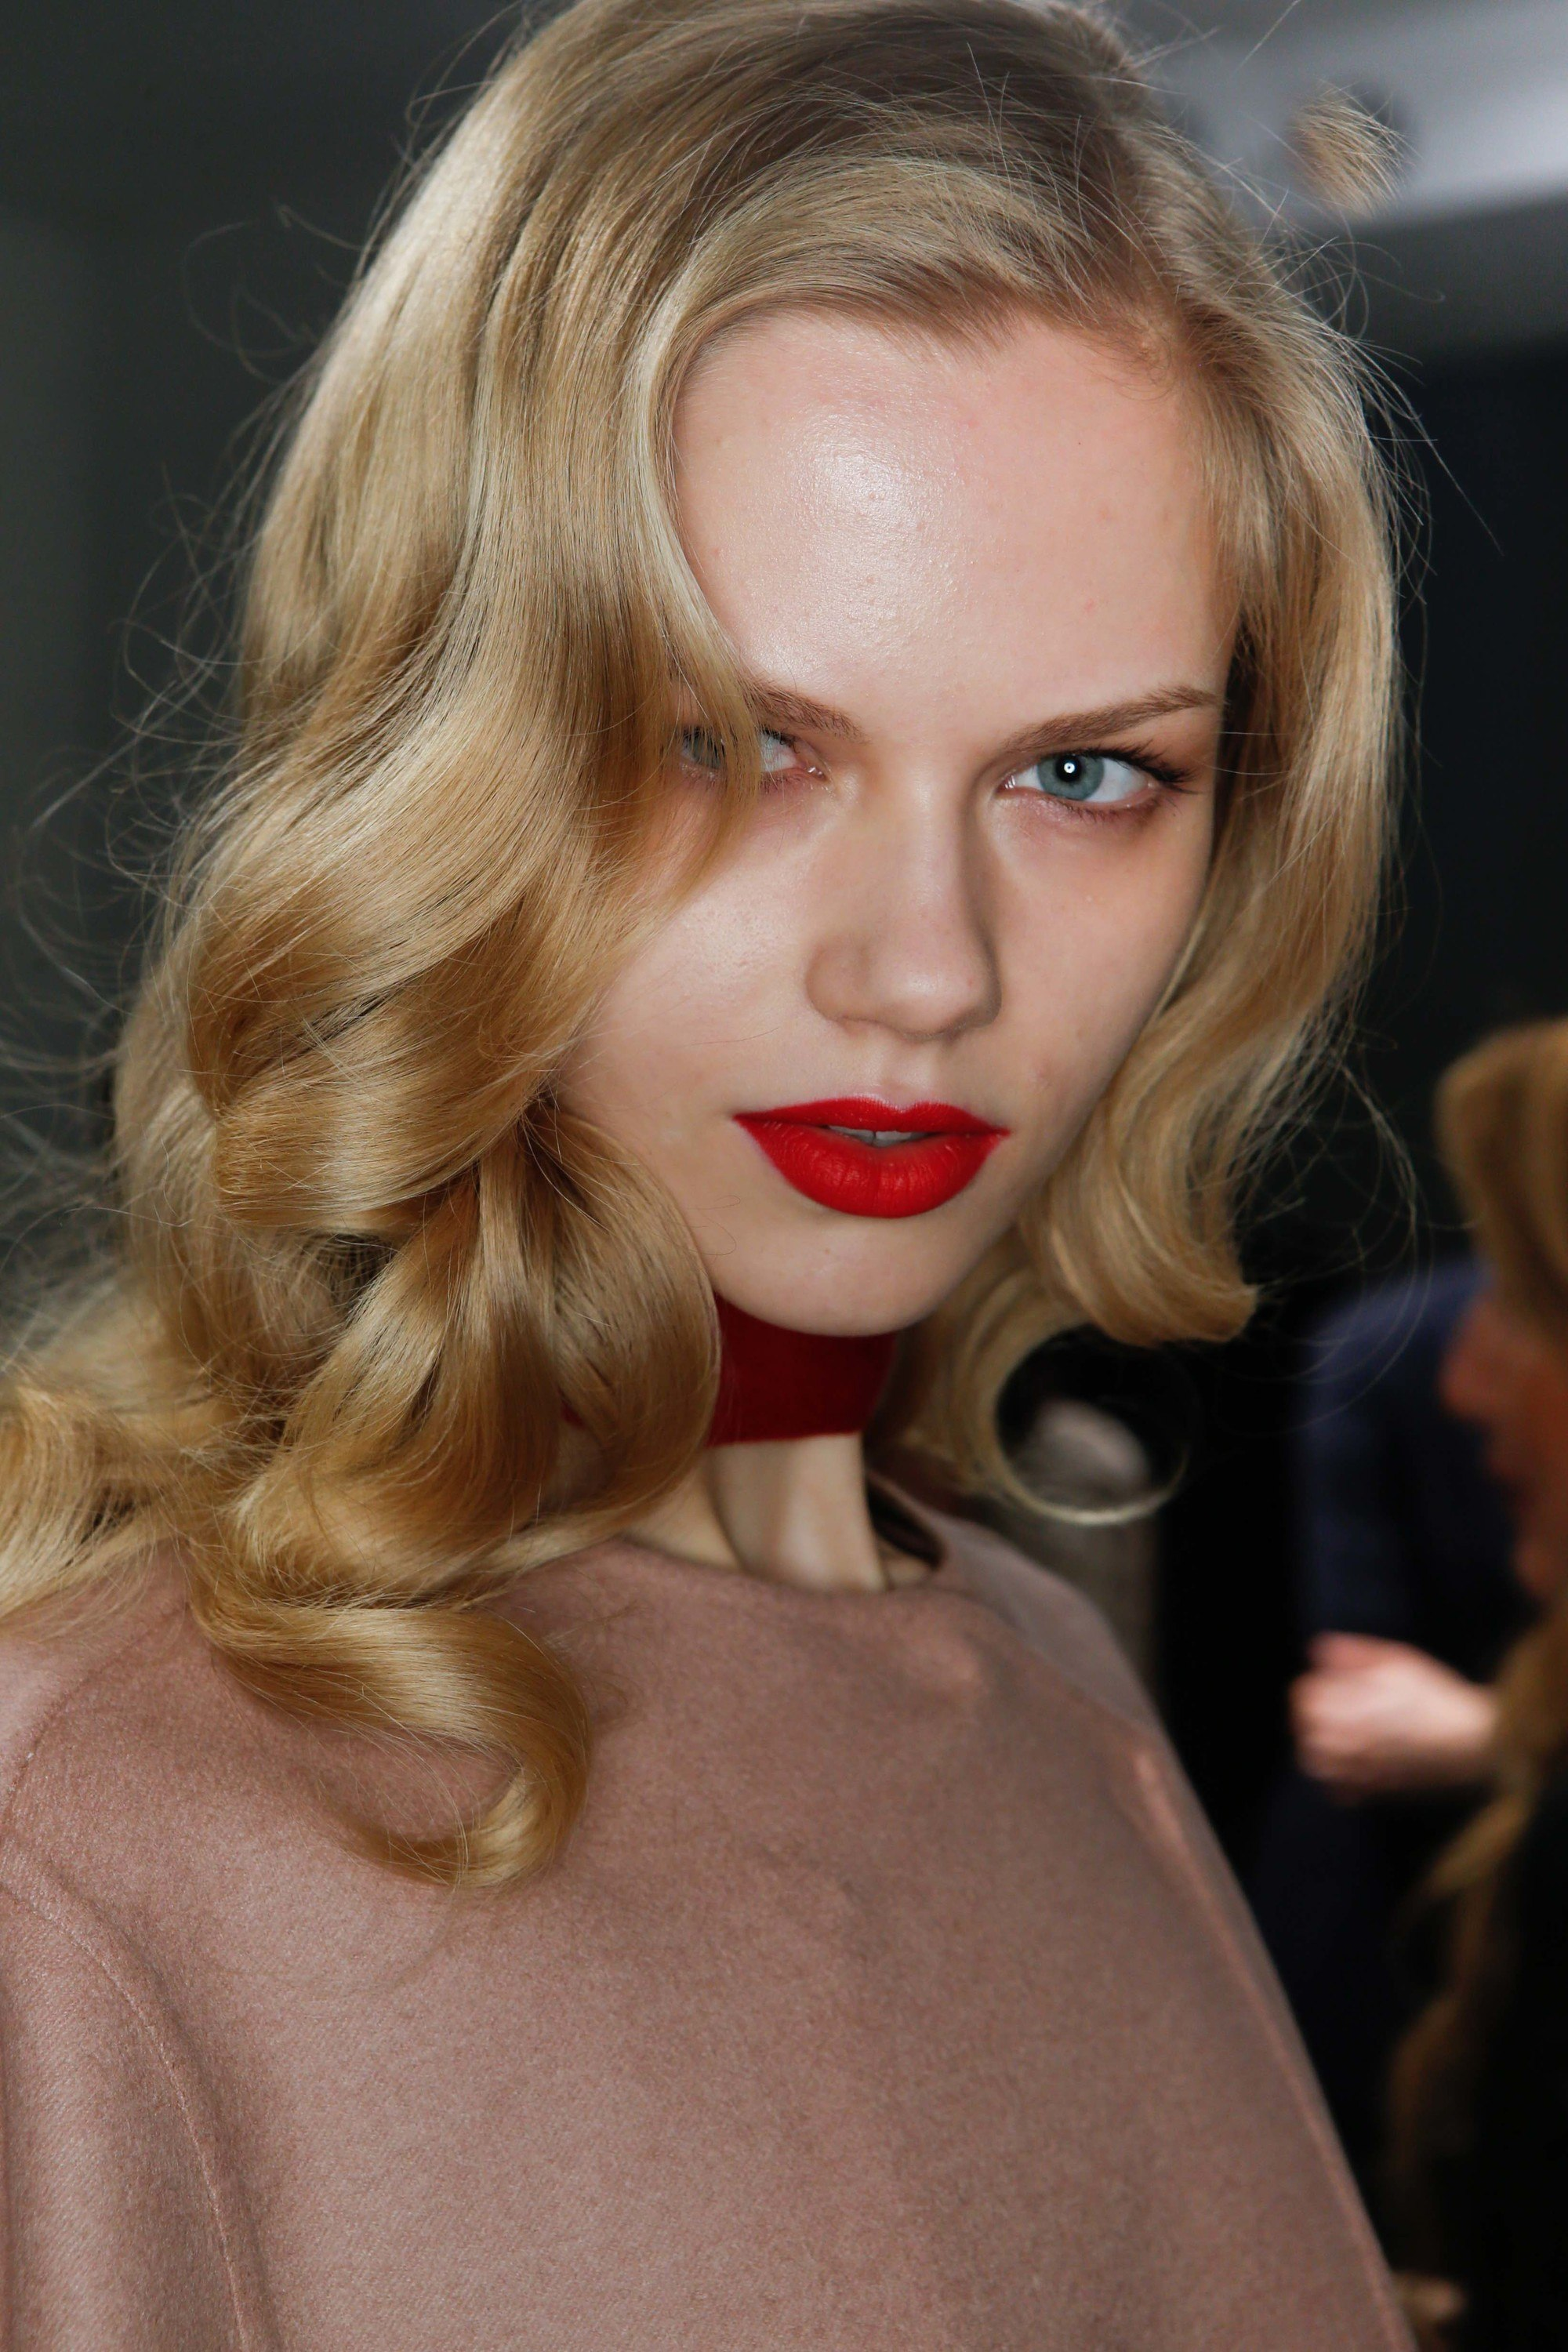 curl straightened hair: backstage of woman with hollywood curls posing